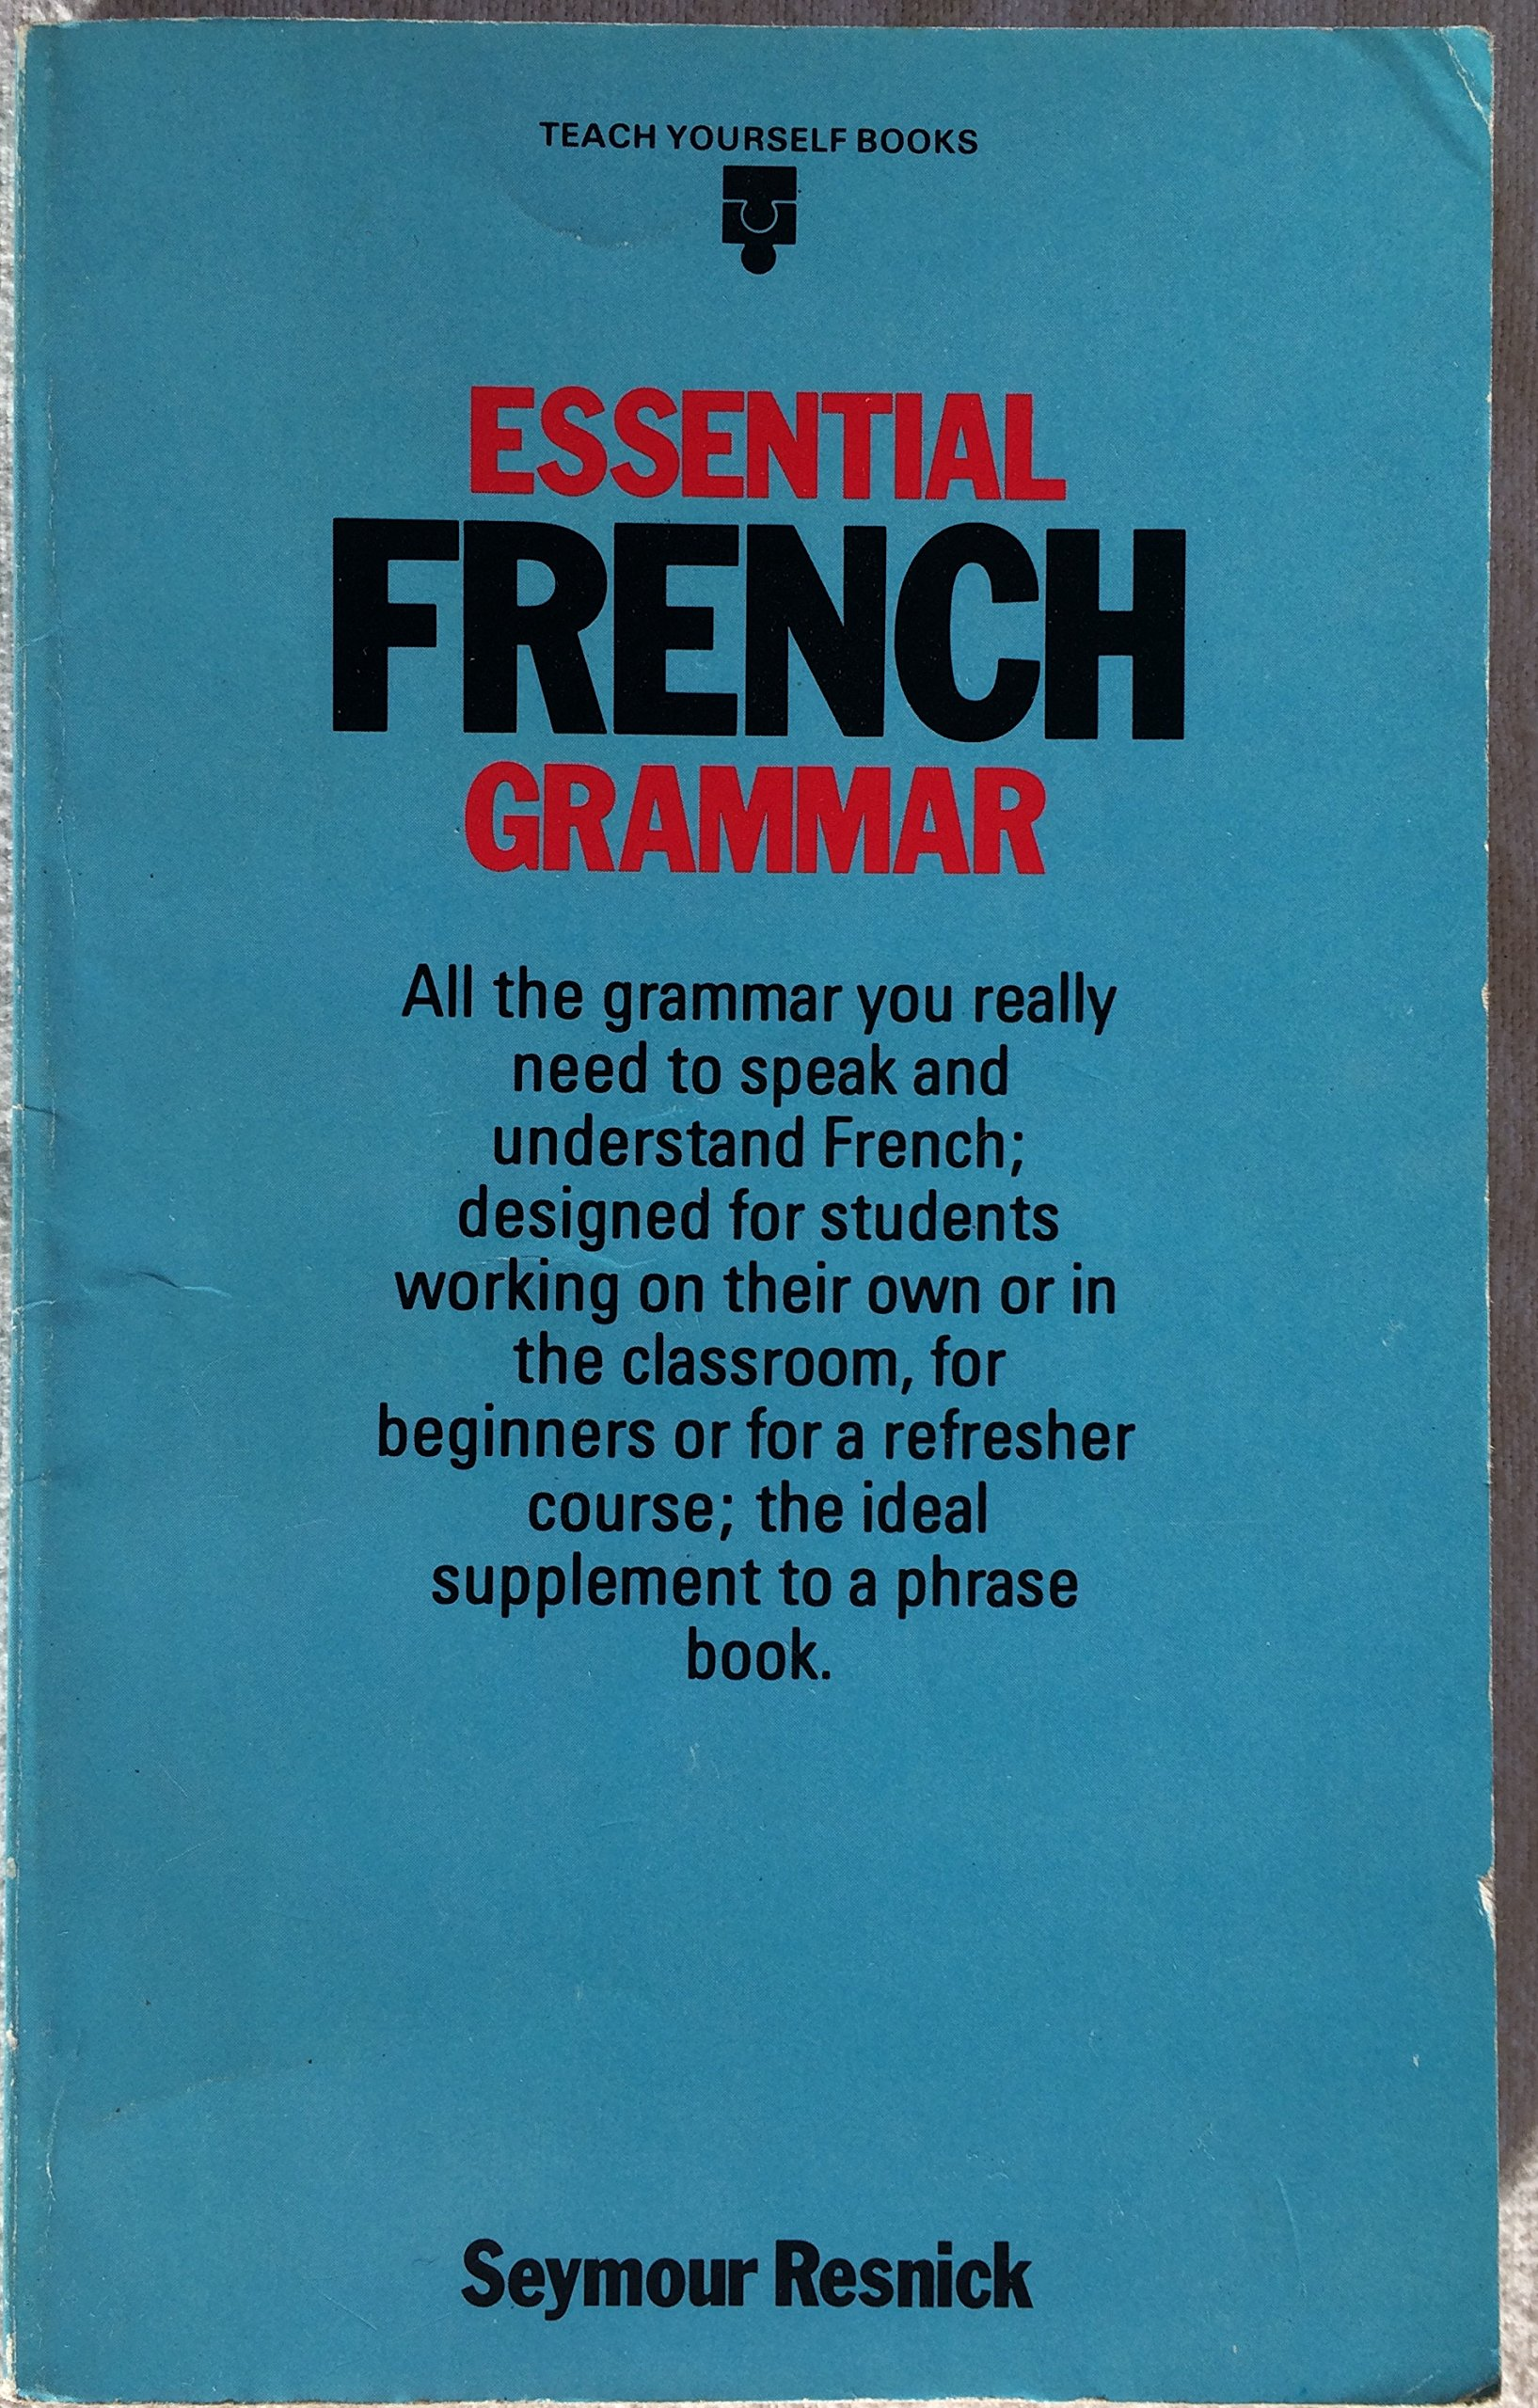 ESSENTIAL FRENCH GRAMMAR TYPB (Teach Yourself): Amazon.in: Seymour Resnick:  Books